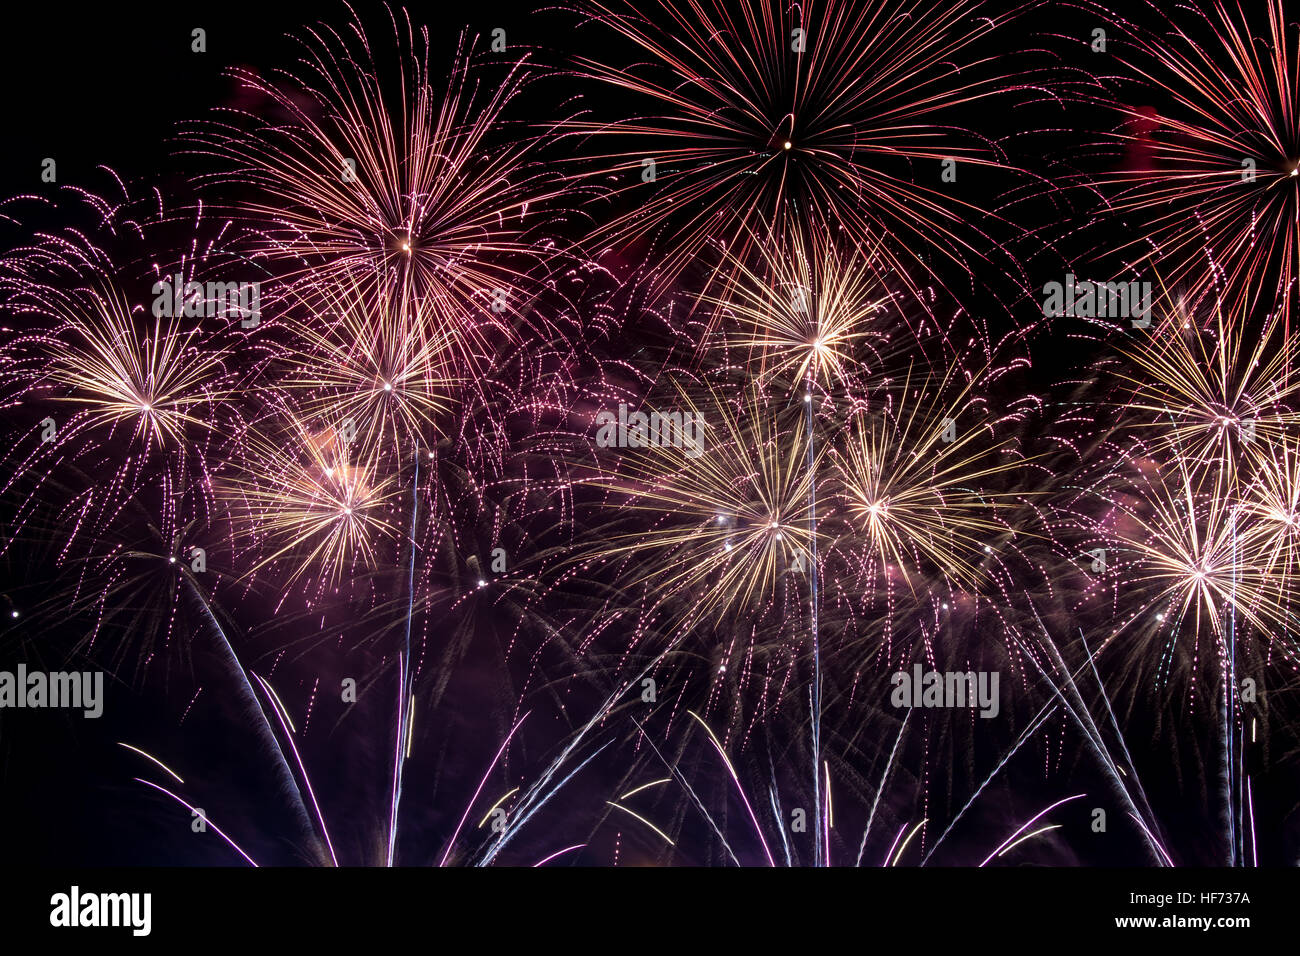 Fireworks colorful explosion of color brightness uae dubai dfc guinness worl record holder - Stock Image